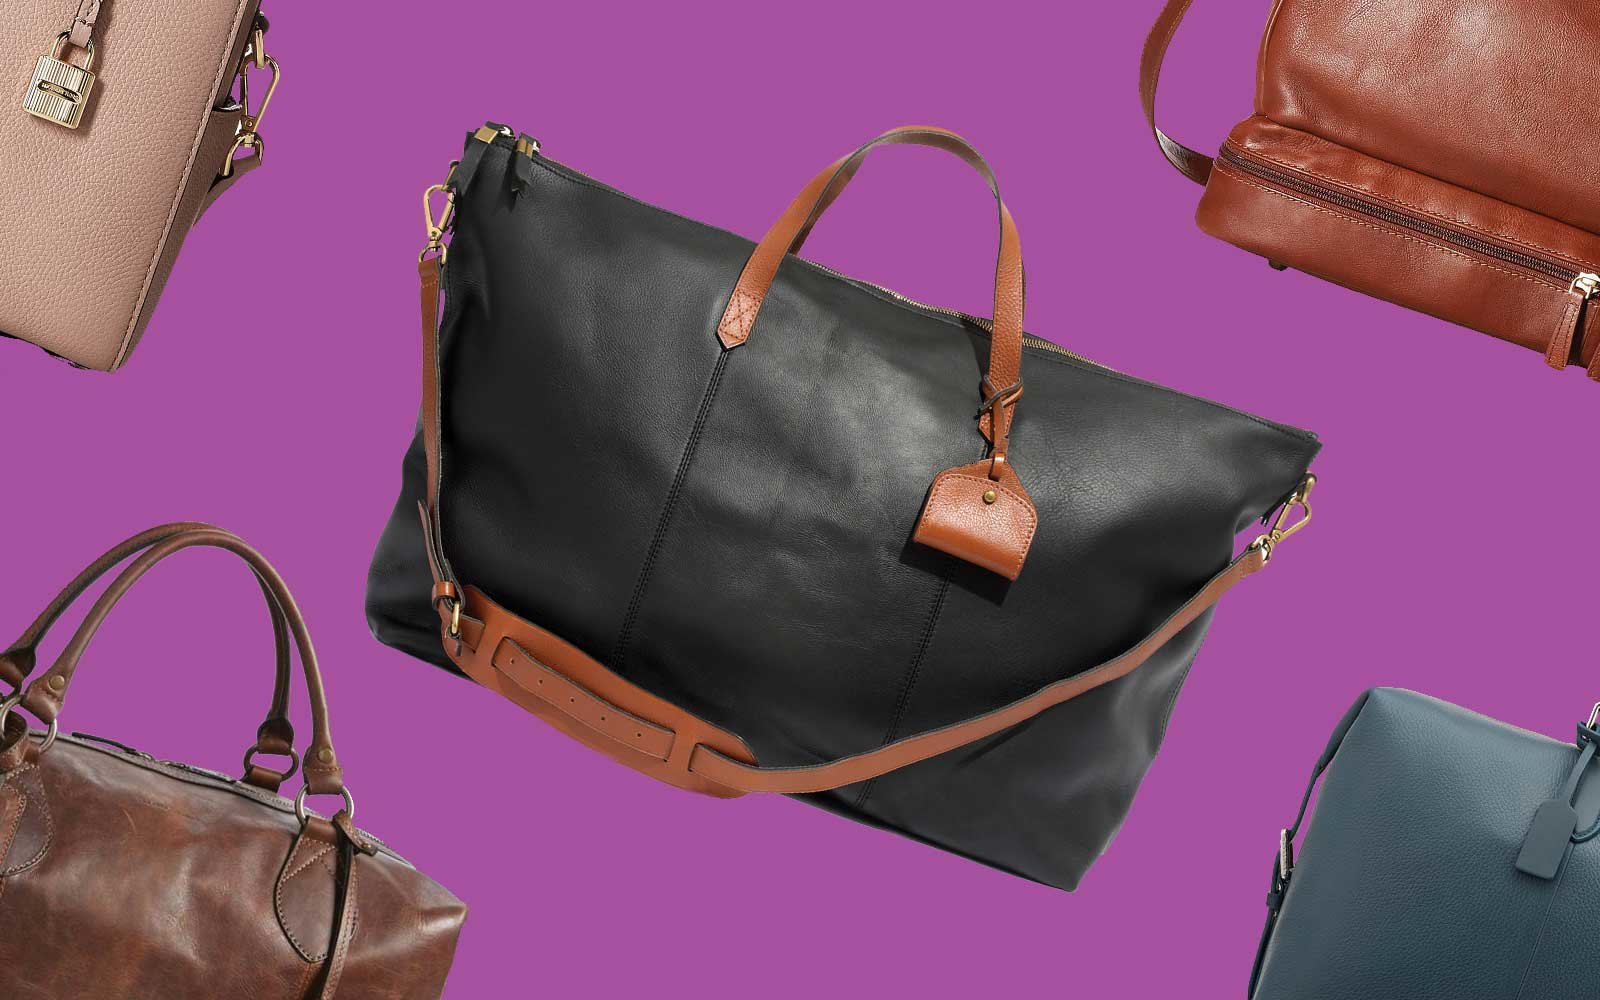 Leather Duffel Bags for Travelers